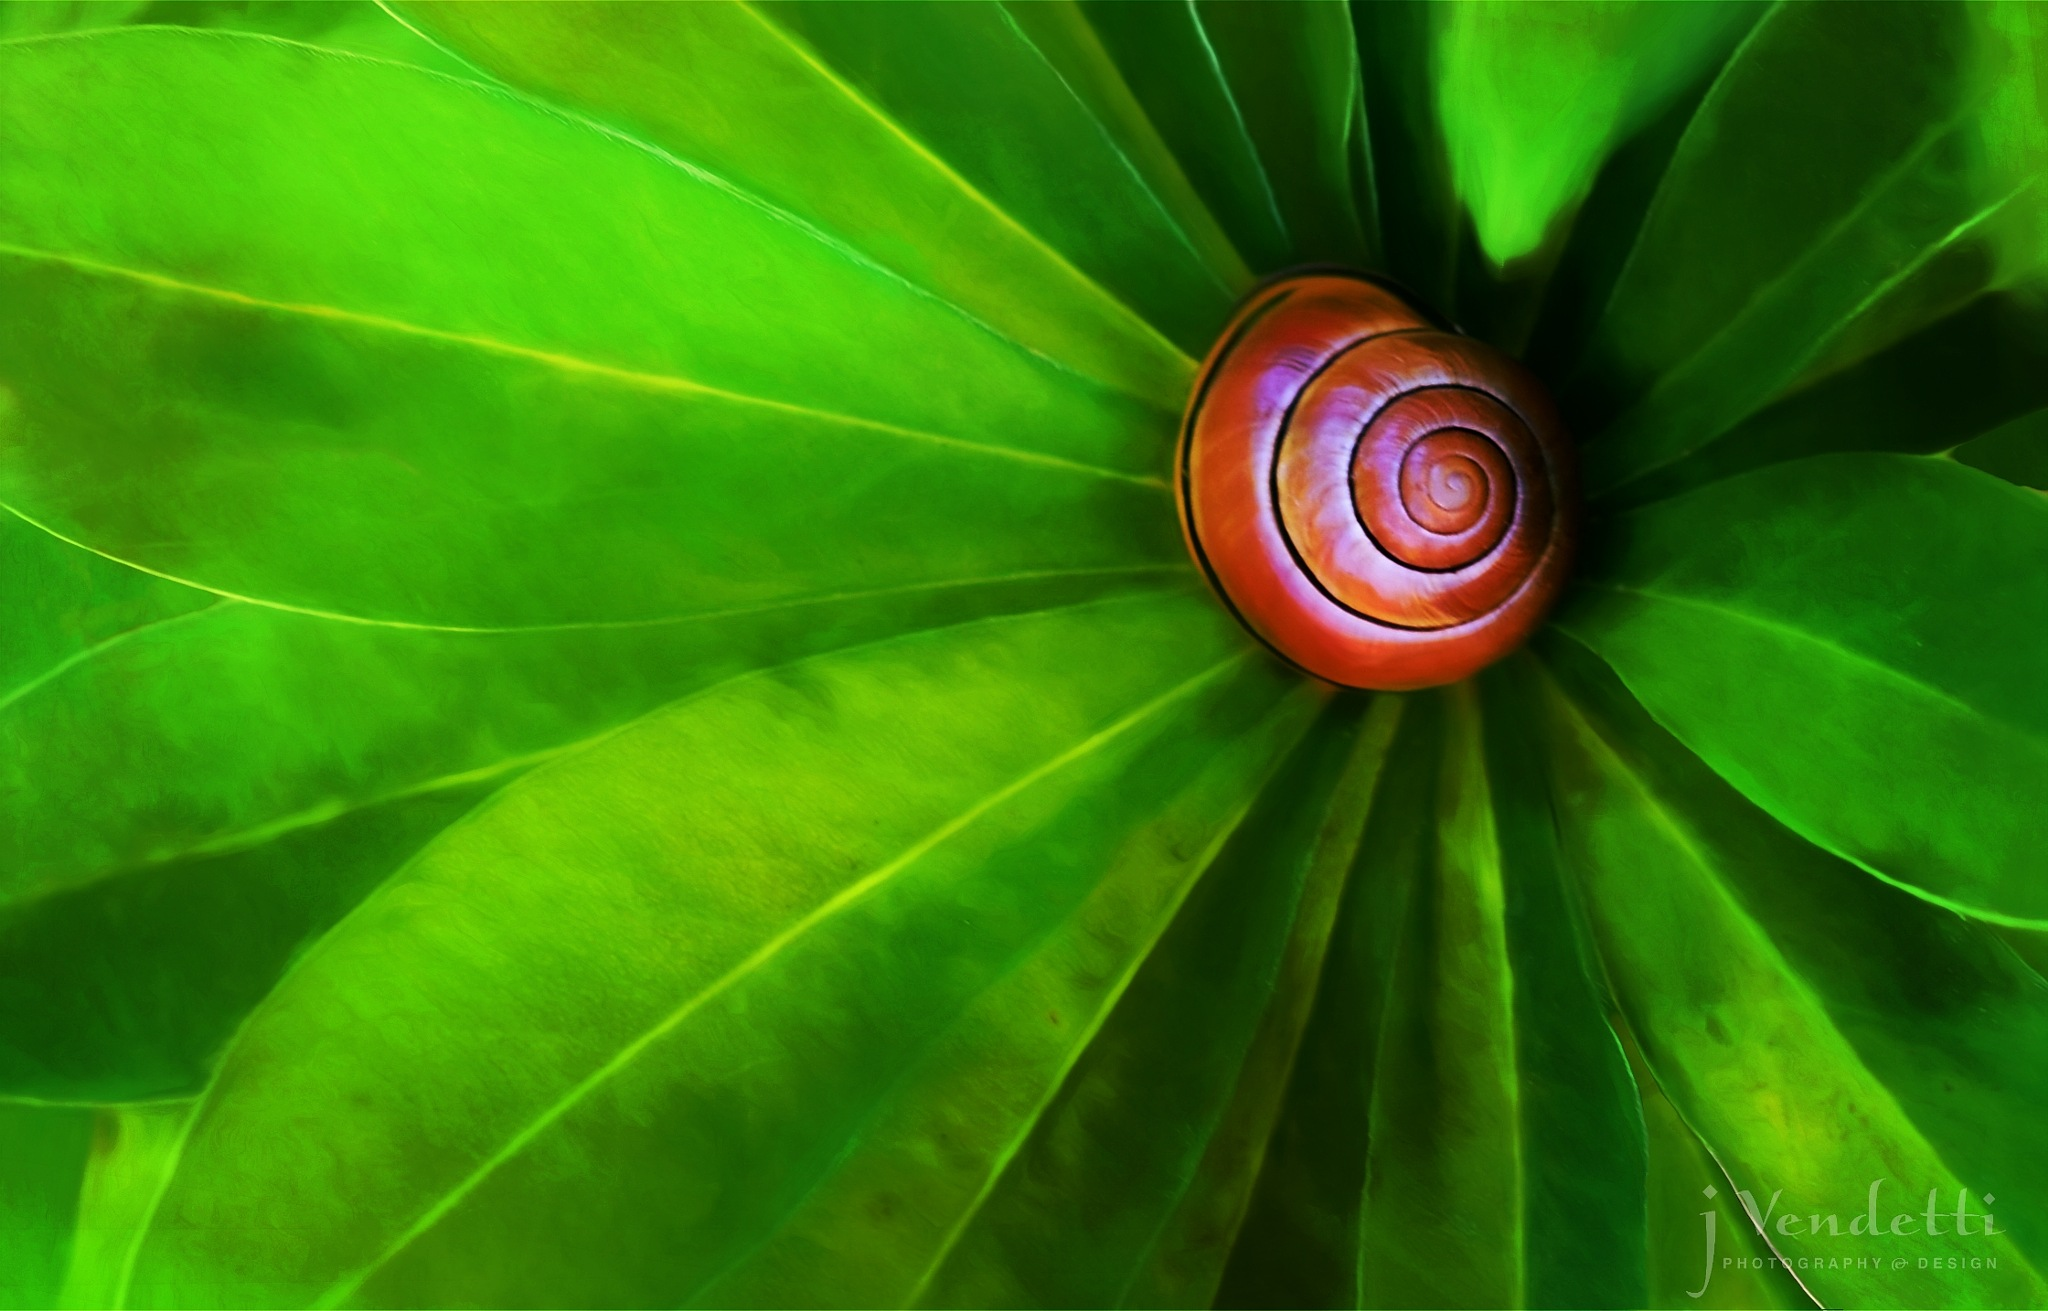 Snail on Lupine Leaf by Jessica Vendetti